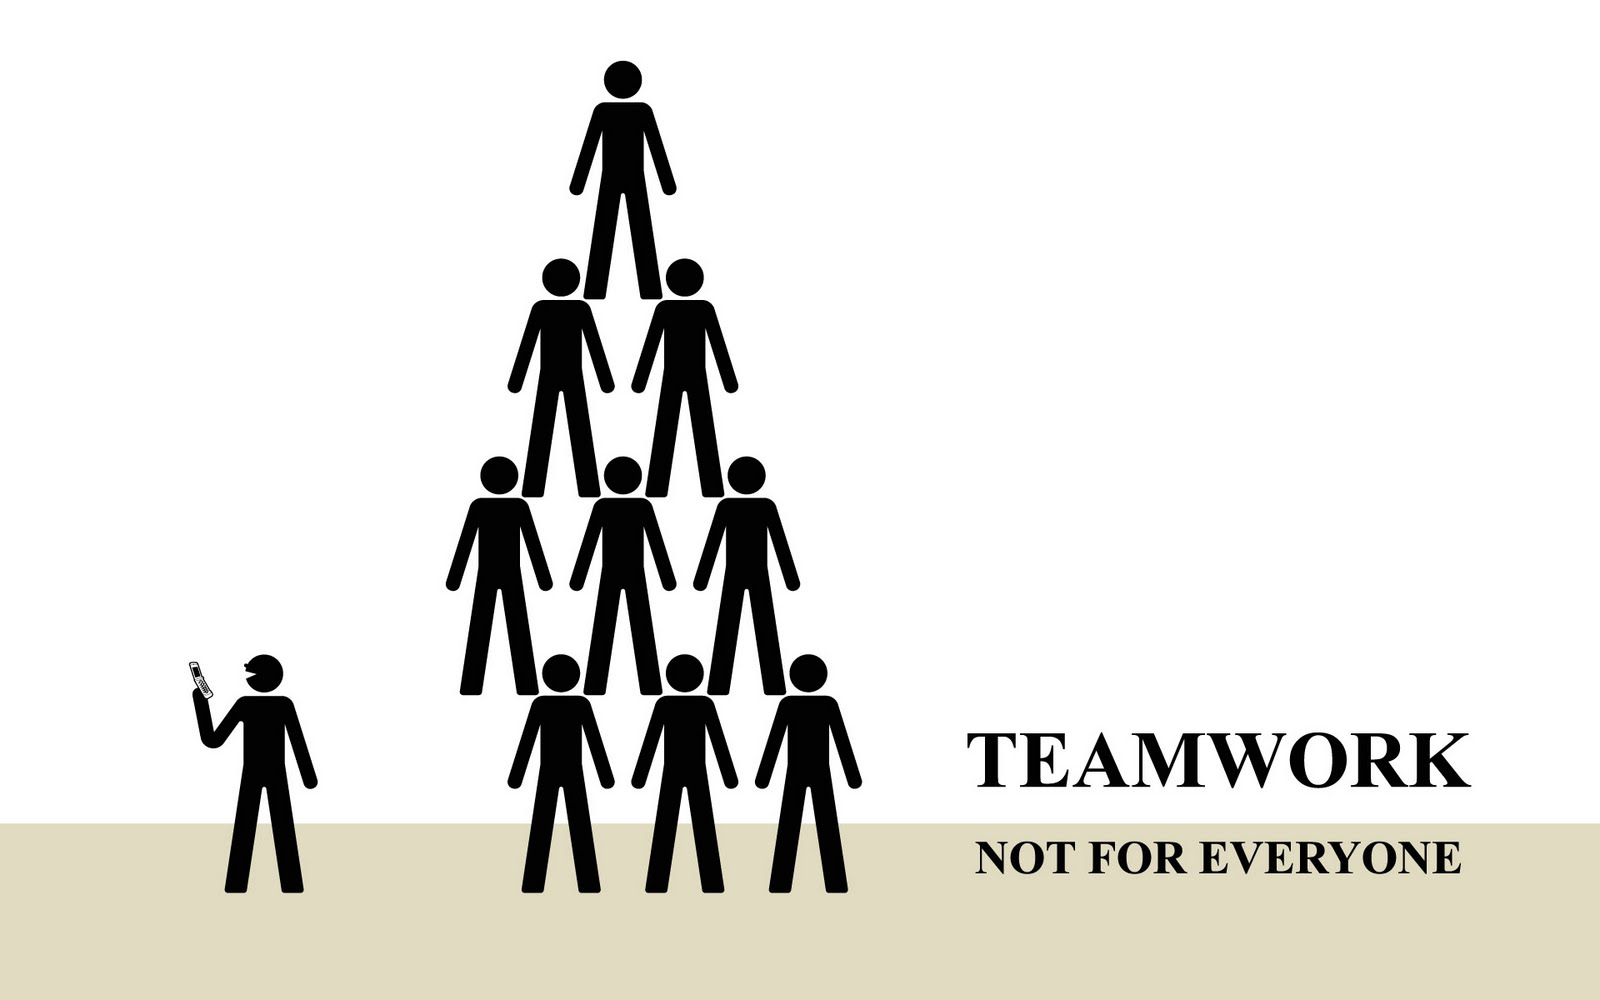 Funny Office Illustrations for team work | Wallpaper Hd Black